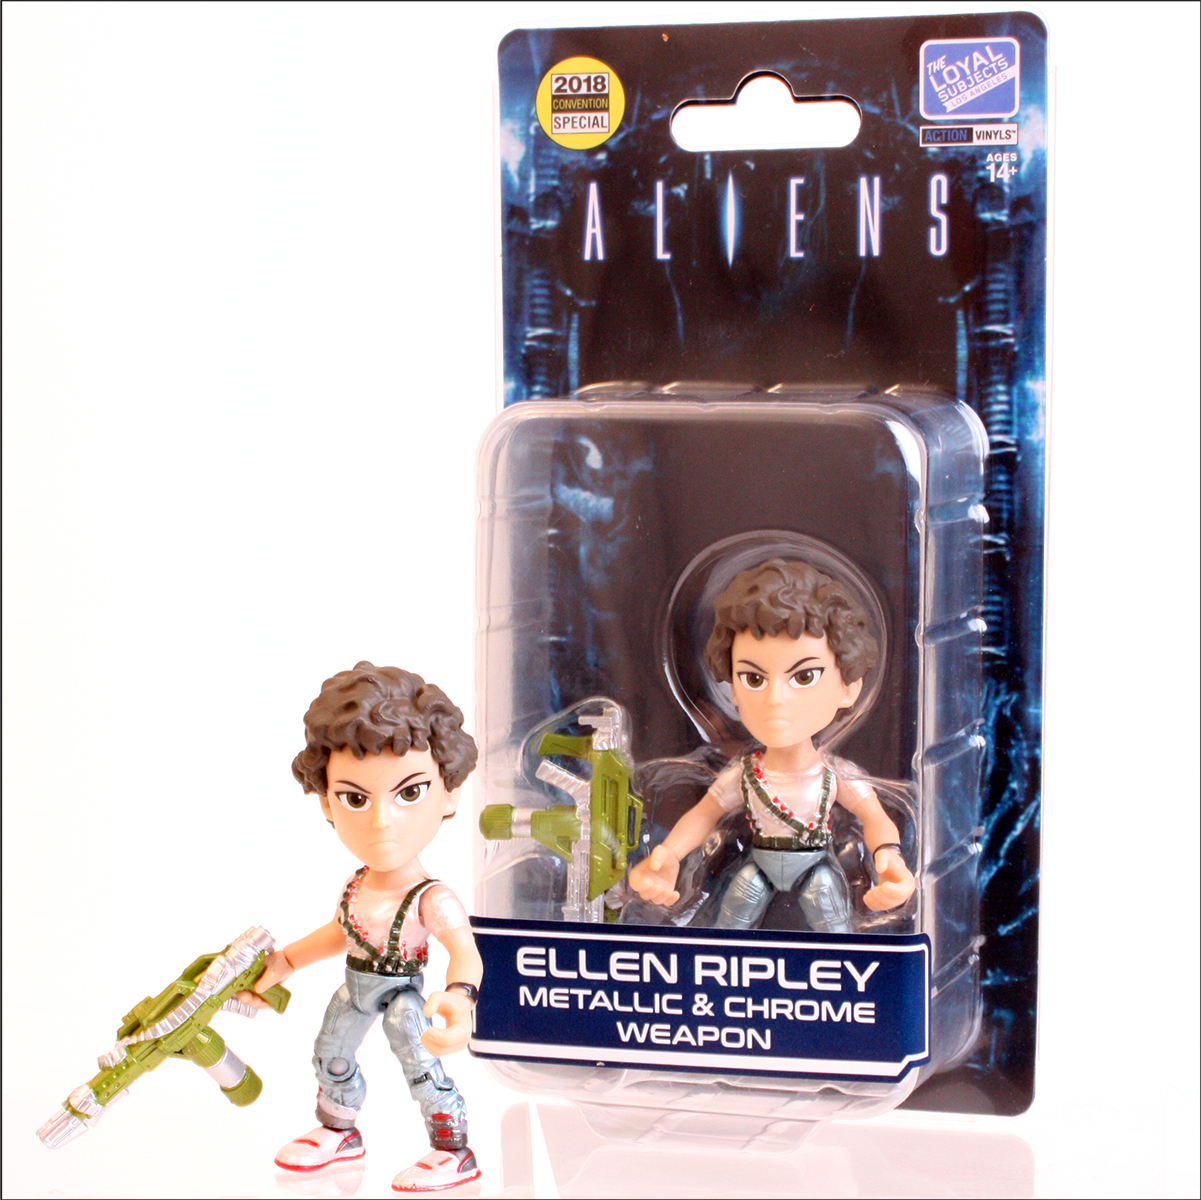 The Loyal Subject: Aliens (Lt. Ellen Ripley) Metallic & Chrome Weapon LIMITED